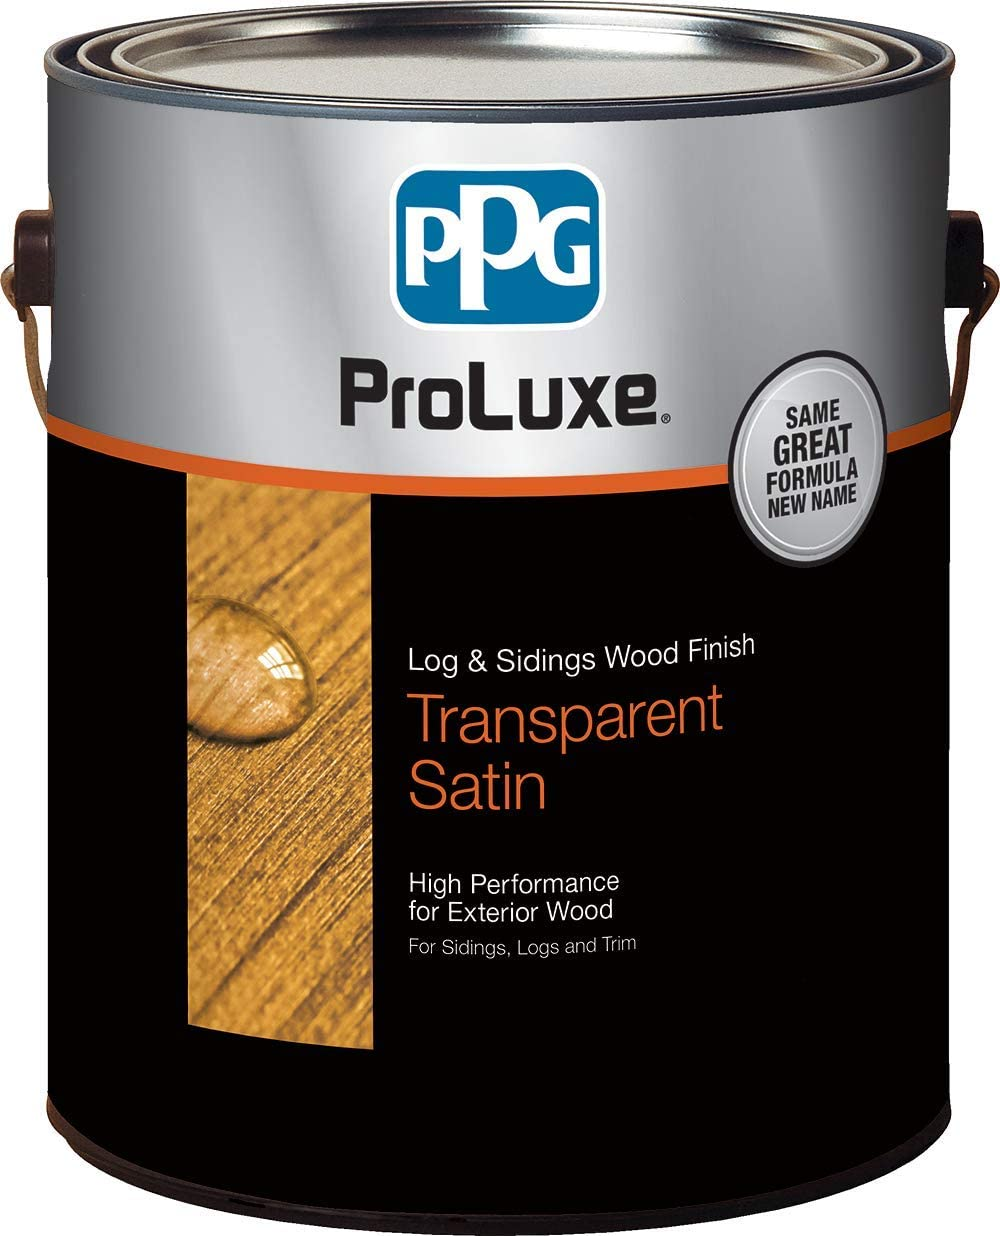 PPG ProLuxe Log and Siding Wood Cedar 077 Houston Mall Max 57% OFF 1 Gallon Finish